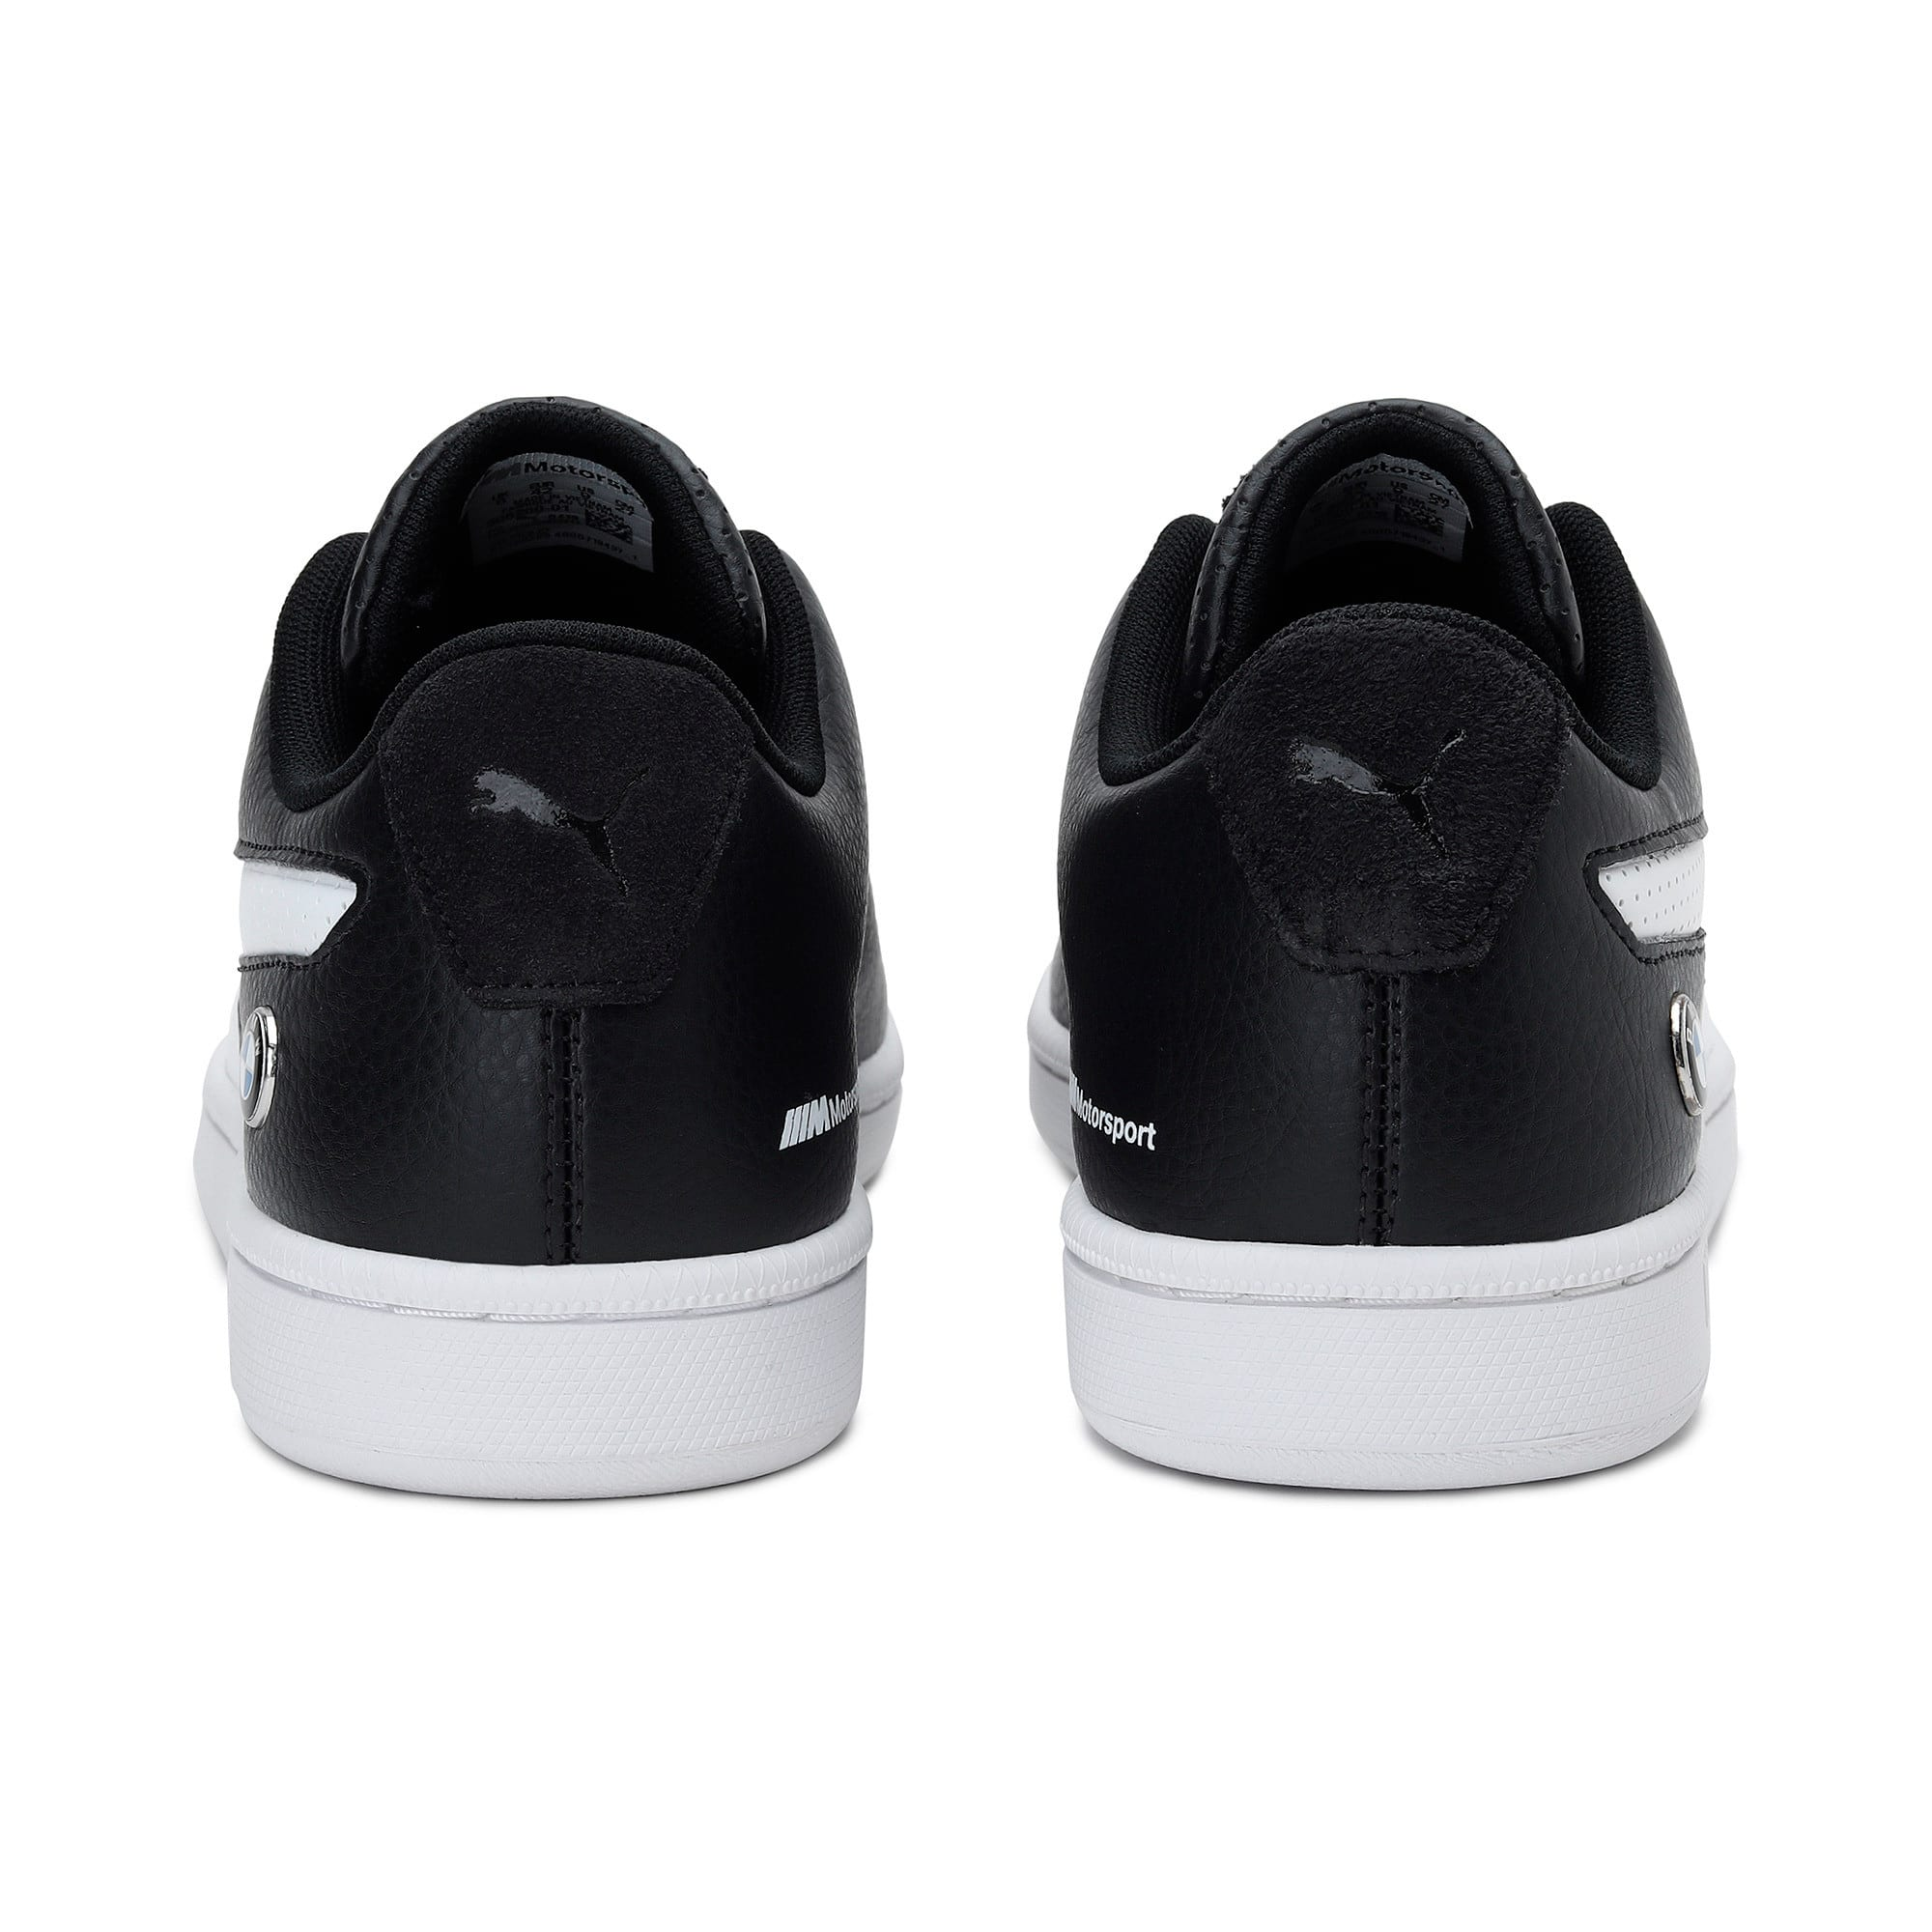 Thumbnail 5 of BMW M Motorsport Court Perf Trainers, Anthracite-Puma White, medium-IND